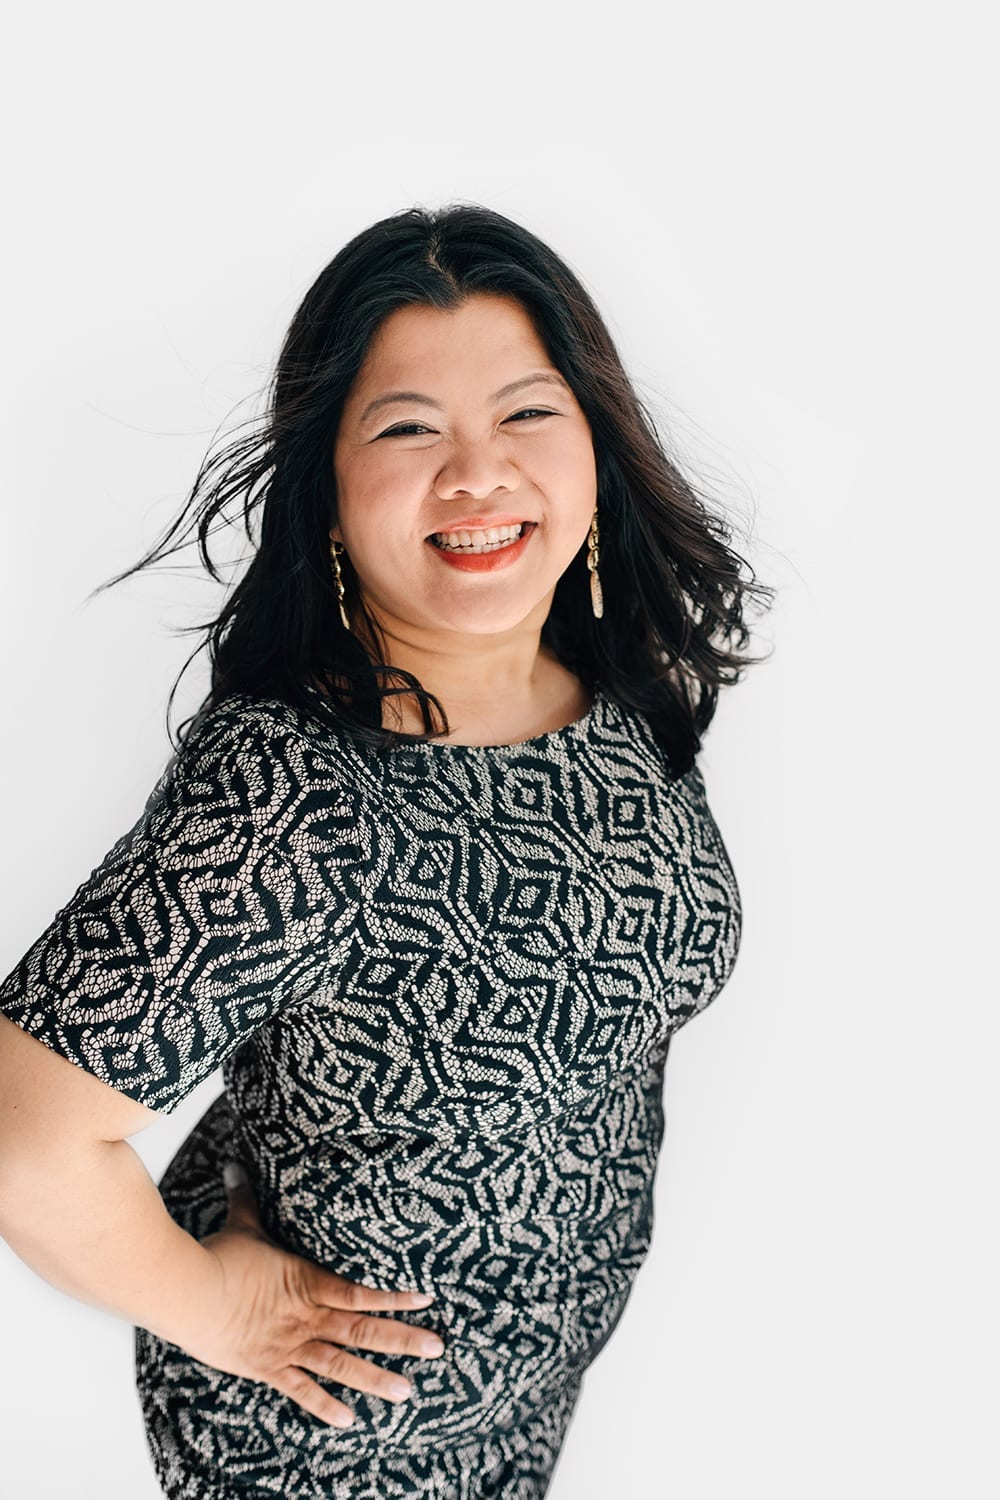 happy smiling asian woman portrait with white background for professional personal branding